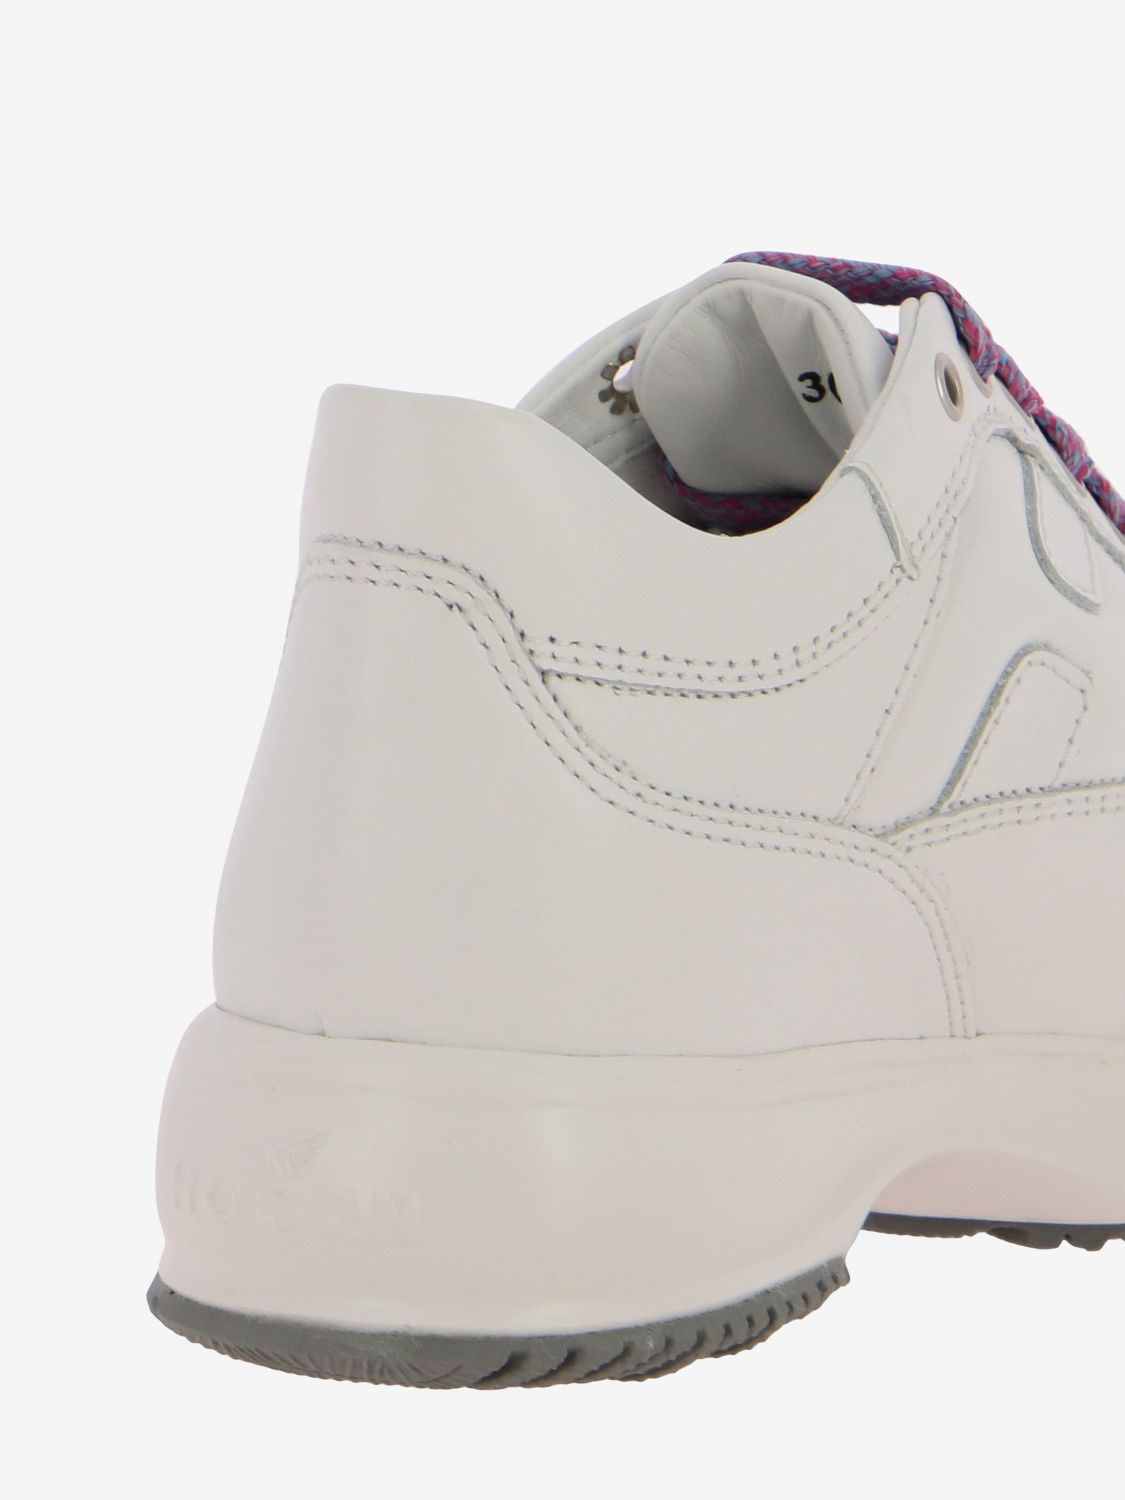 Shoes kids Hogan white 5